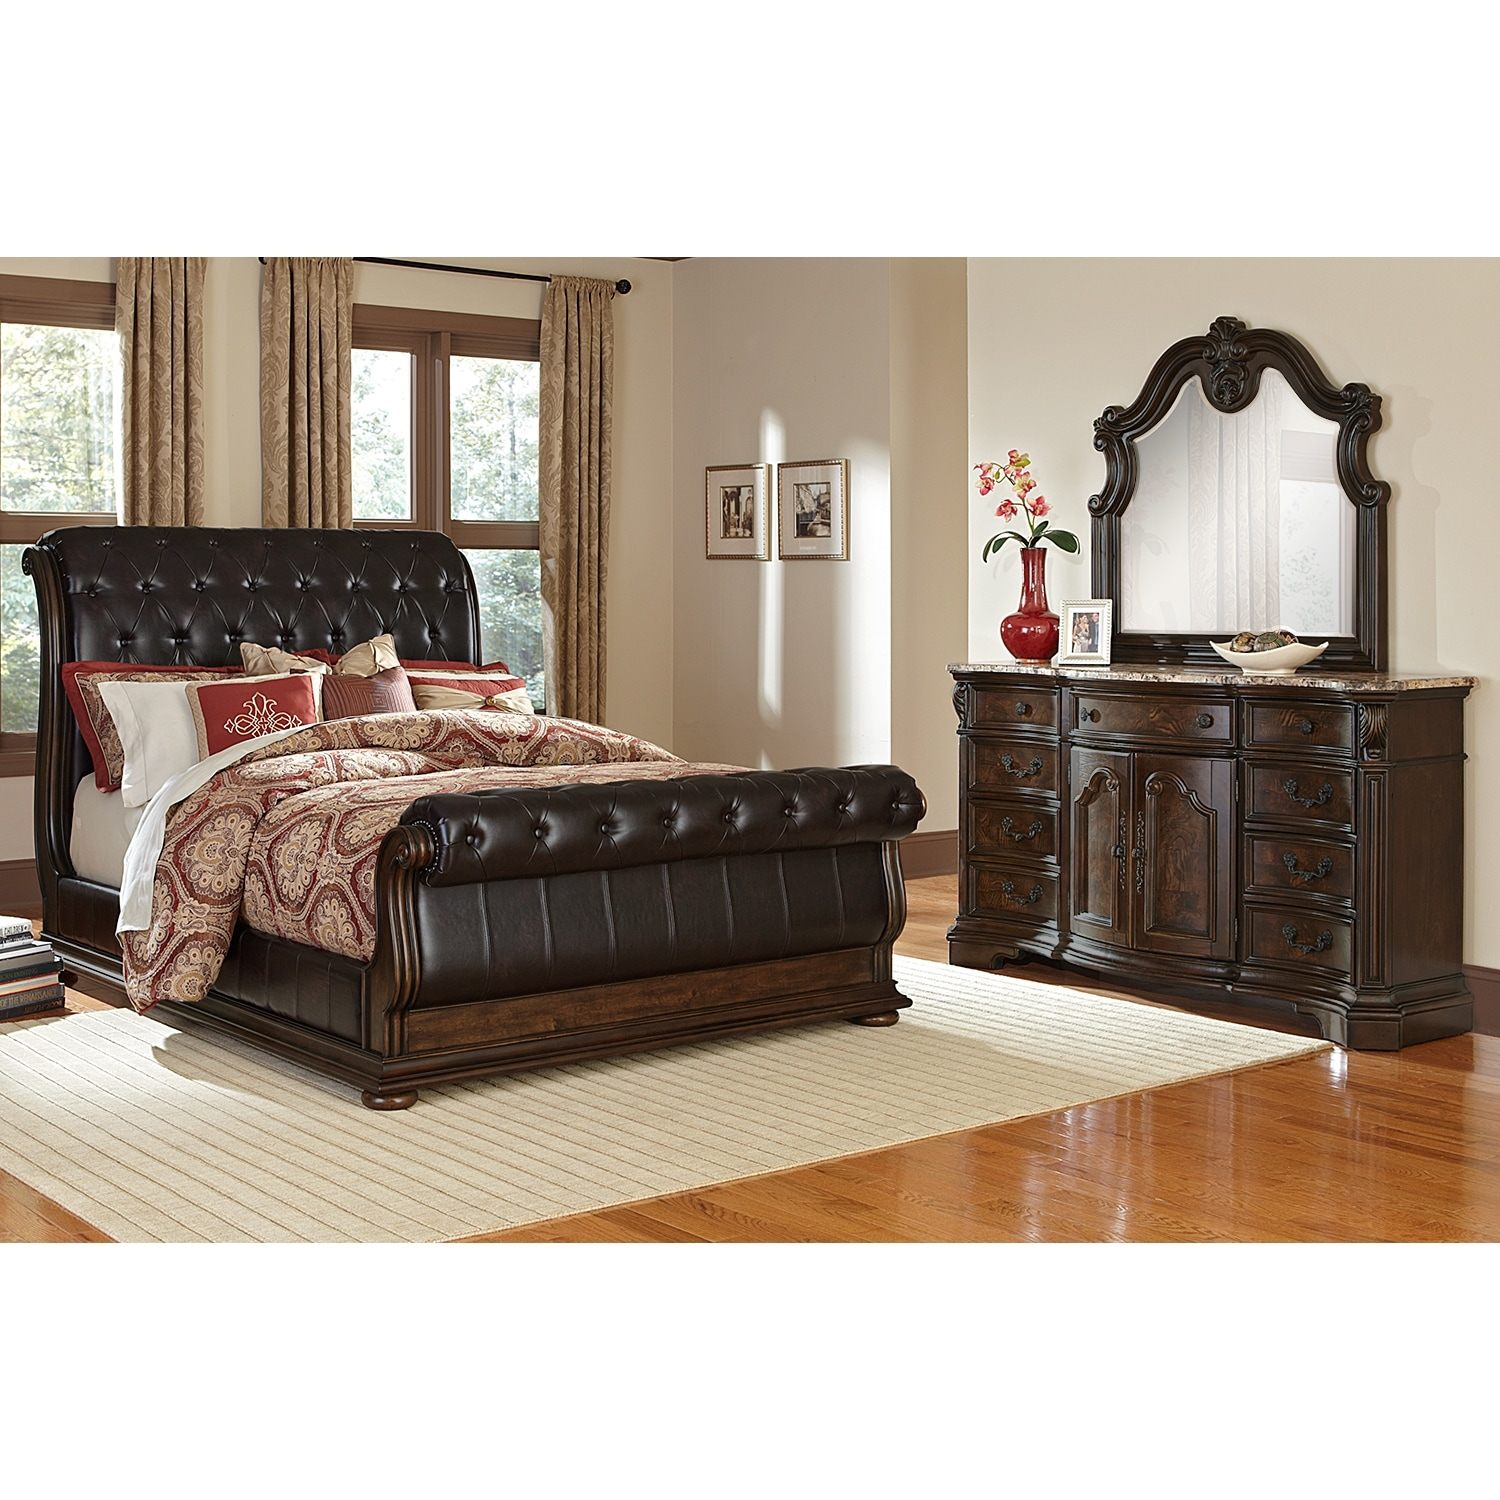 Monticello pecan ii 5 pc king bedroom value city furniture for Where to get bedroom furniture